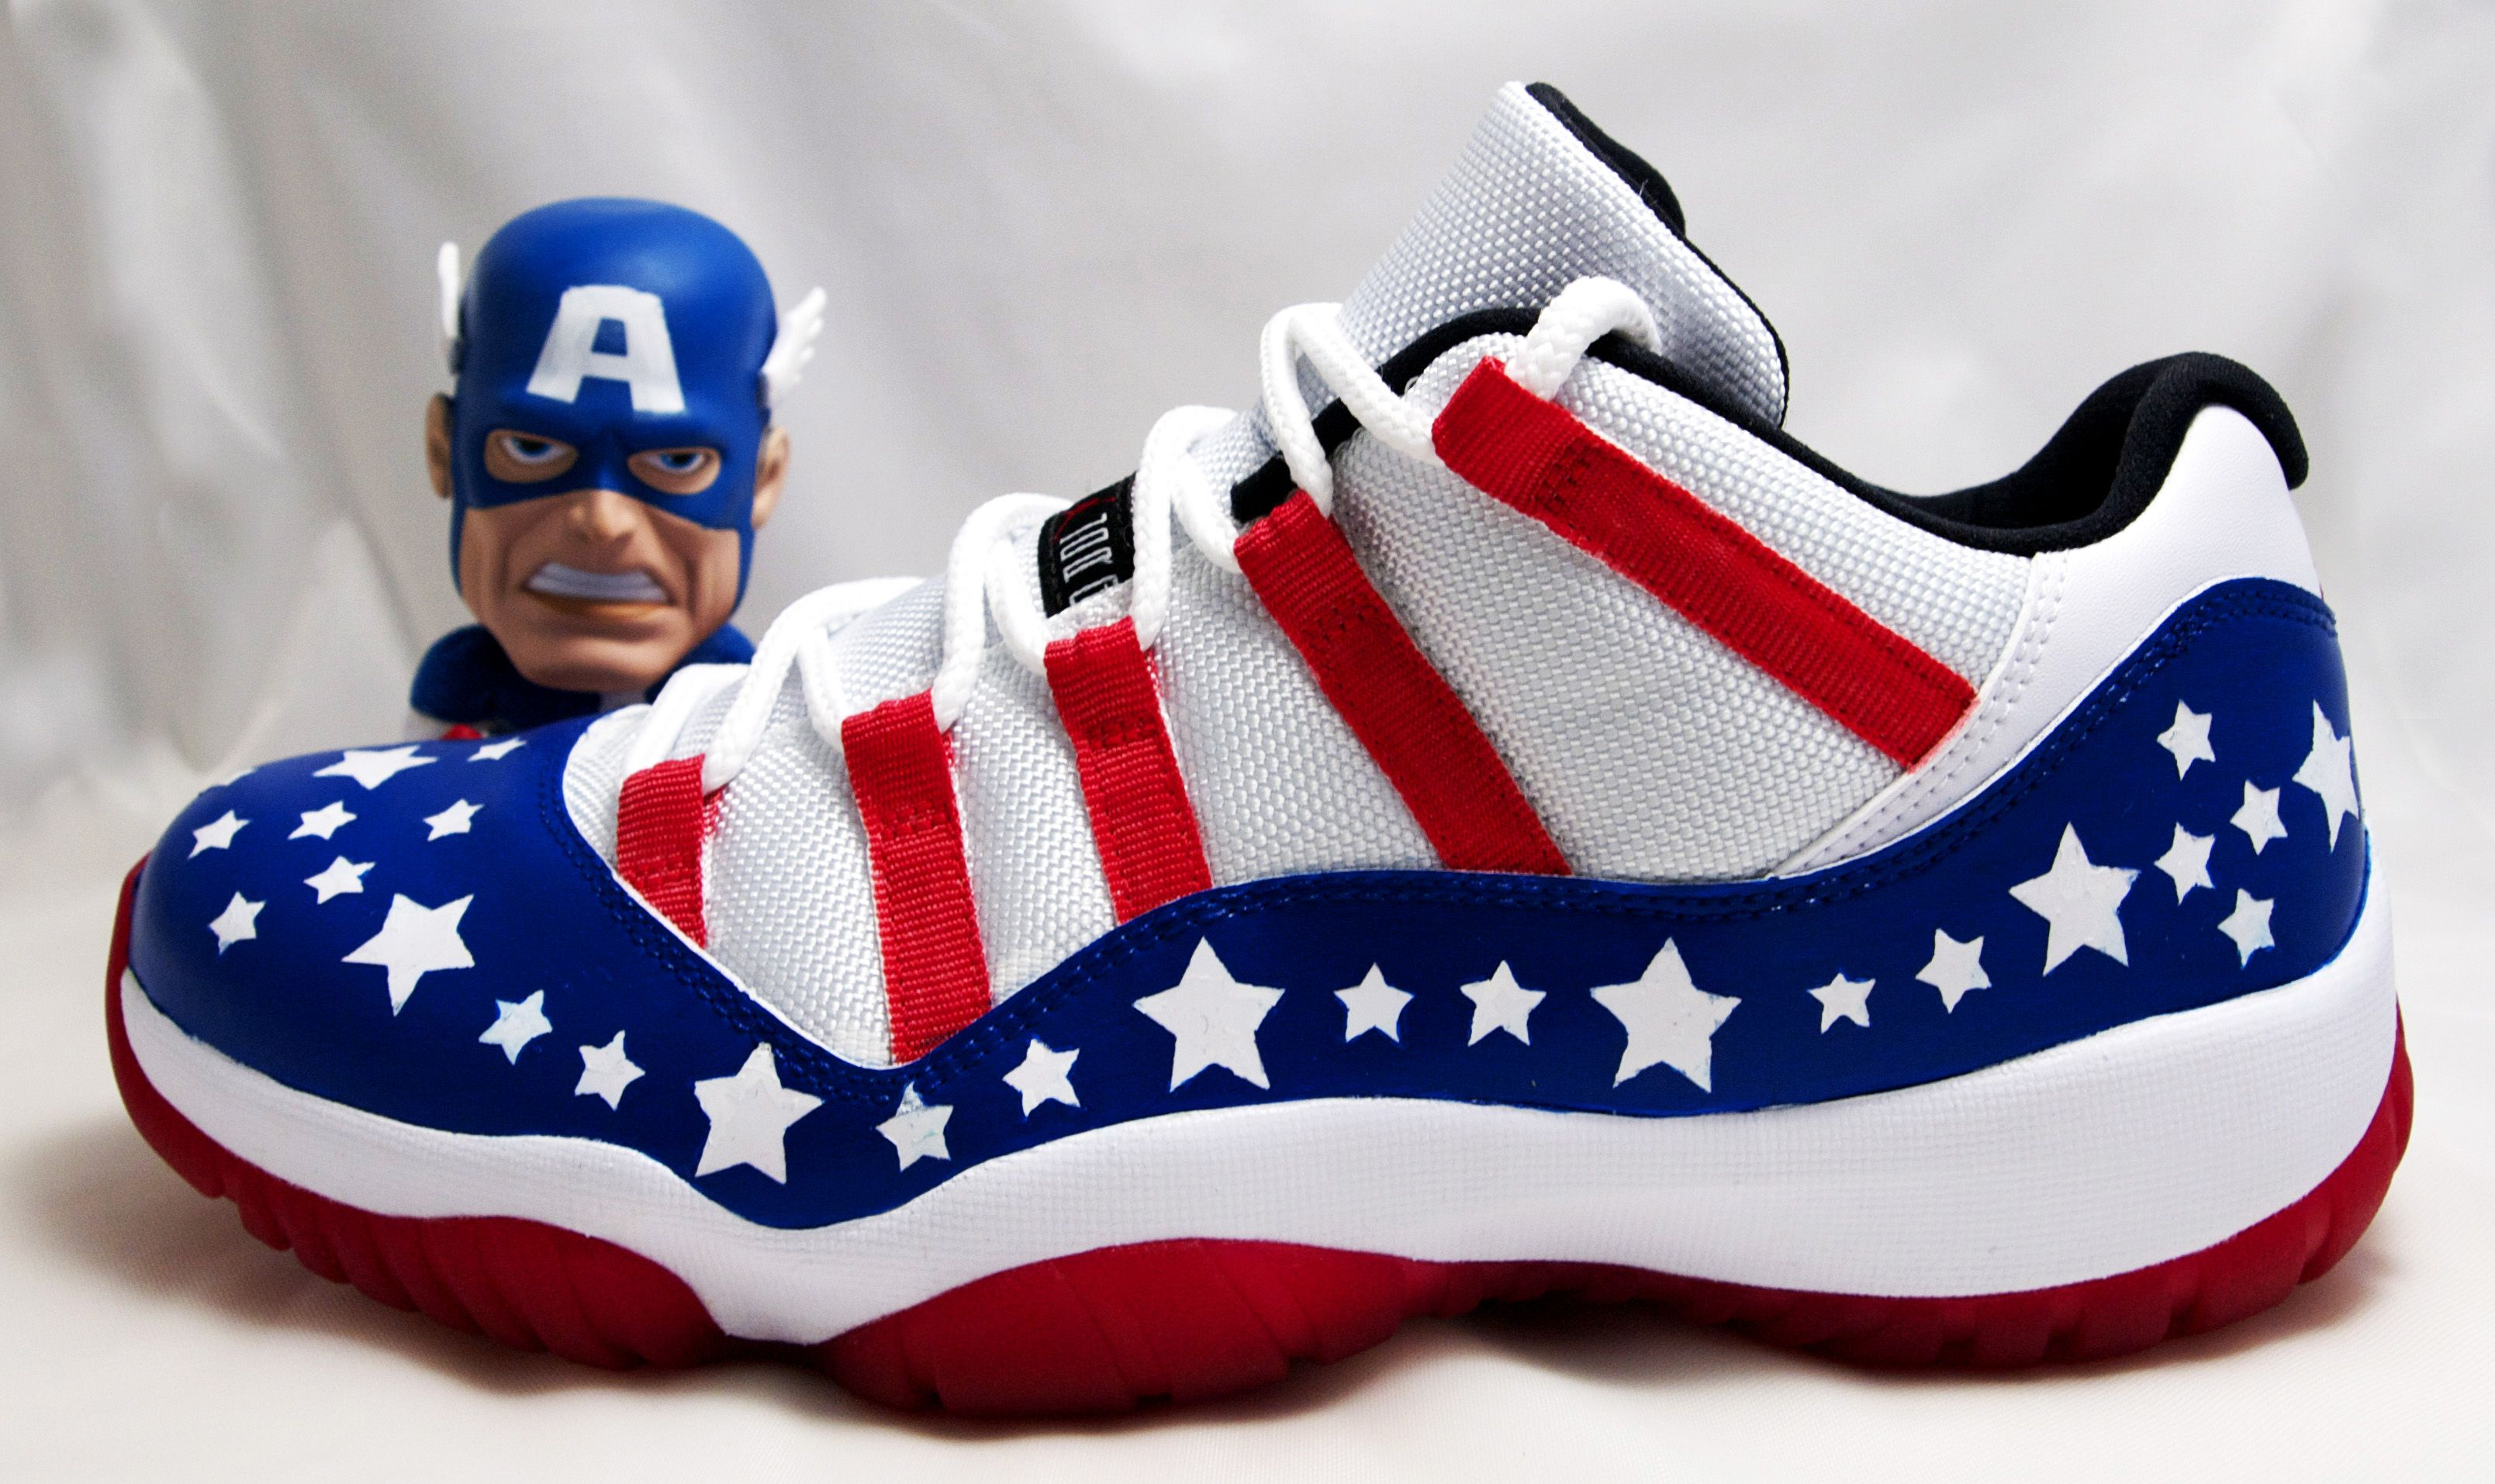 buy online 97712 f2a92 Captain America Jordan s   Air Jordan XI Low -